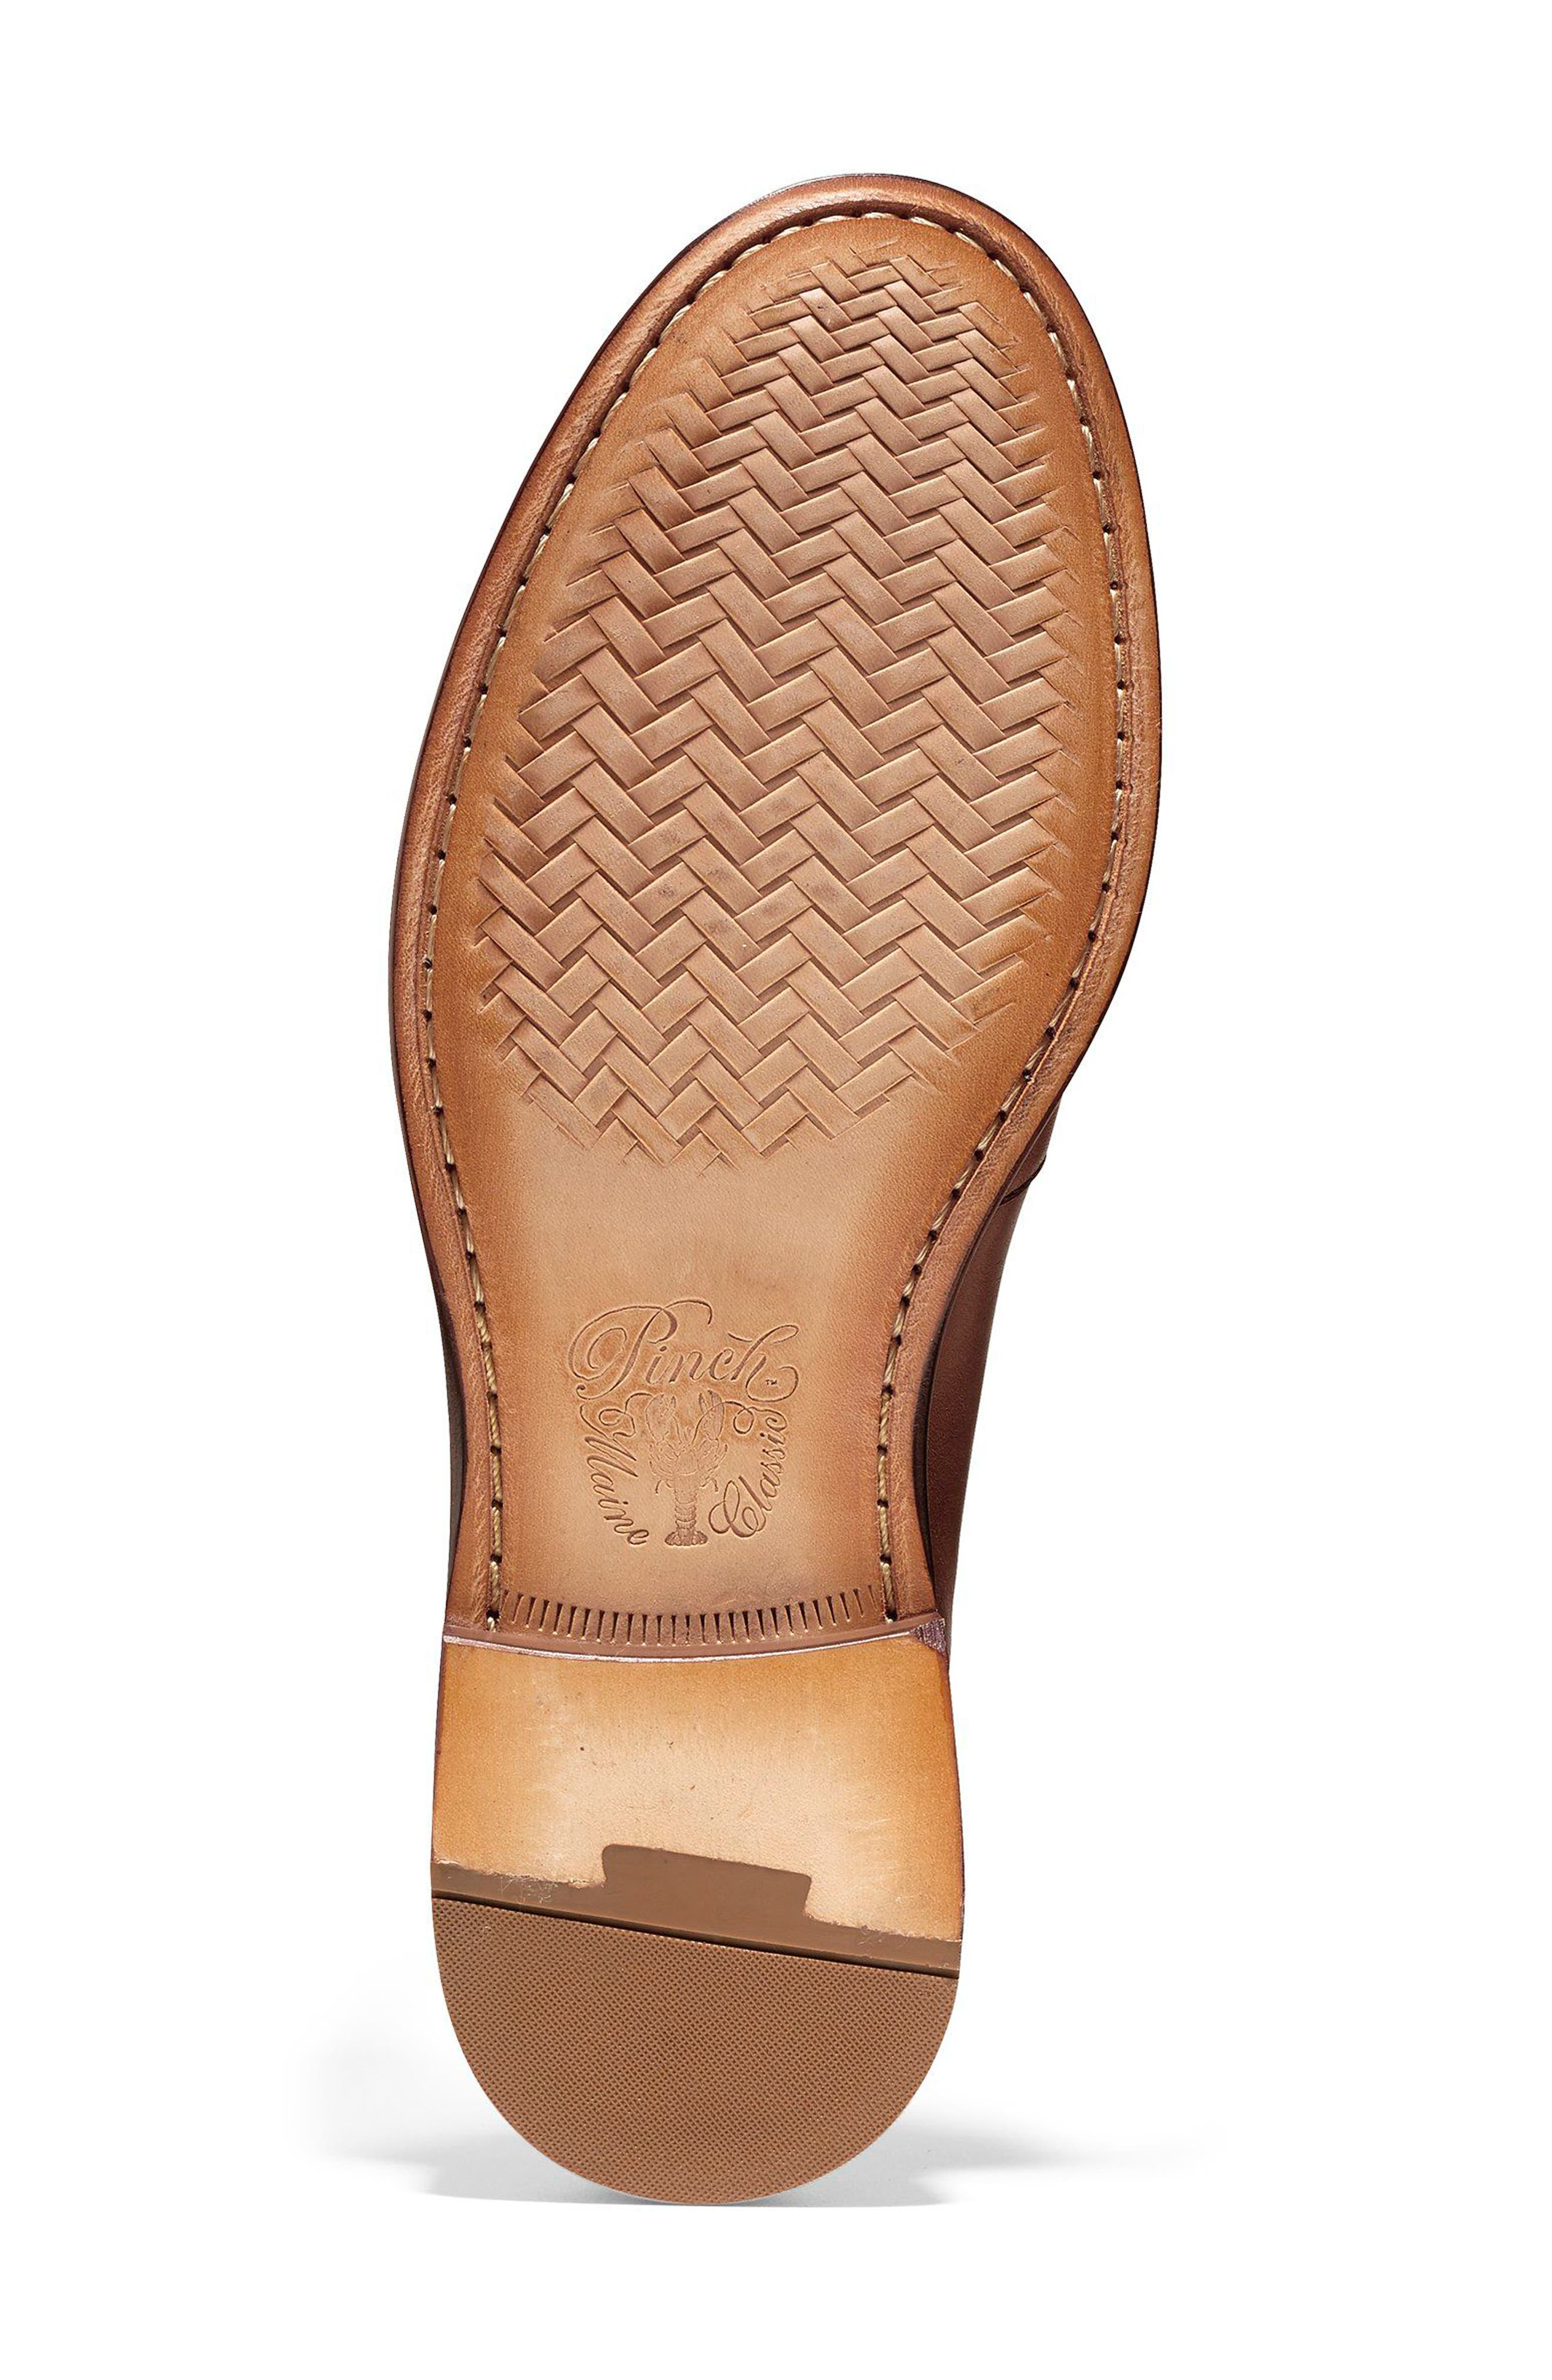 Pinch Penny Loafer,                             Alternate thumbnail 6, color,                             200